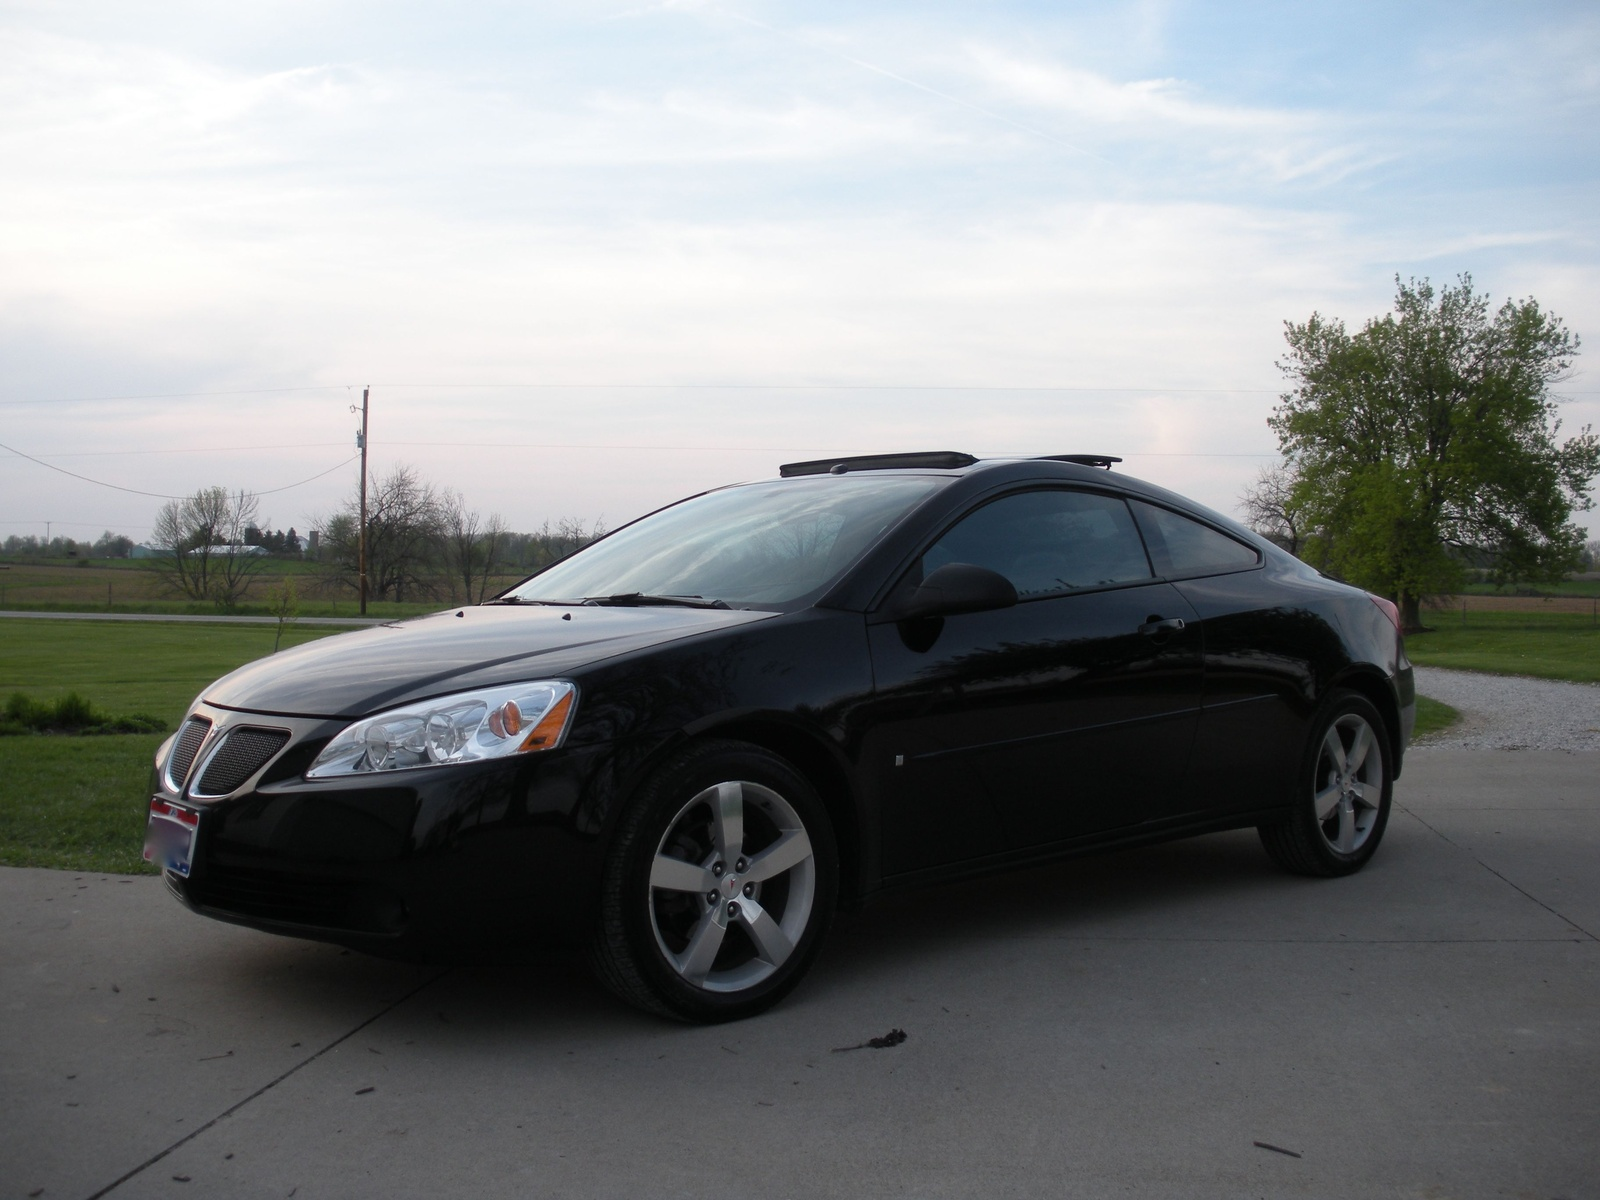 picture of 2006 pontiac g6 gtp coupe exterior. Black Bedroom Furniture Sets. Home Design Ideas